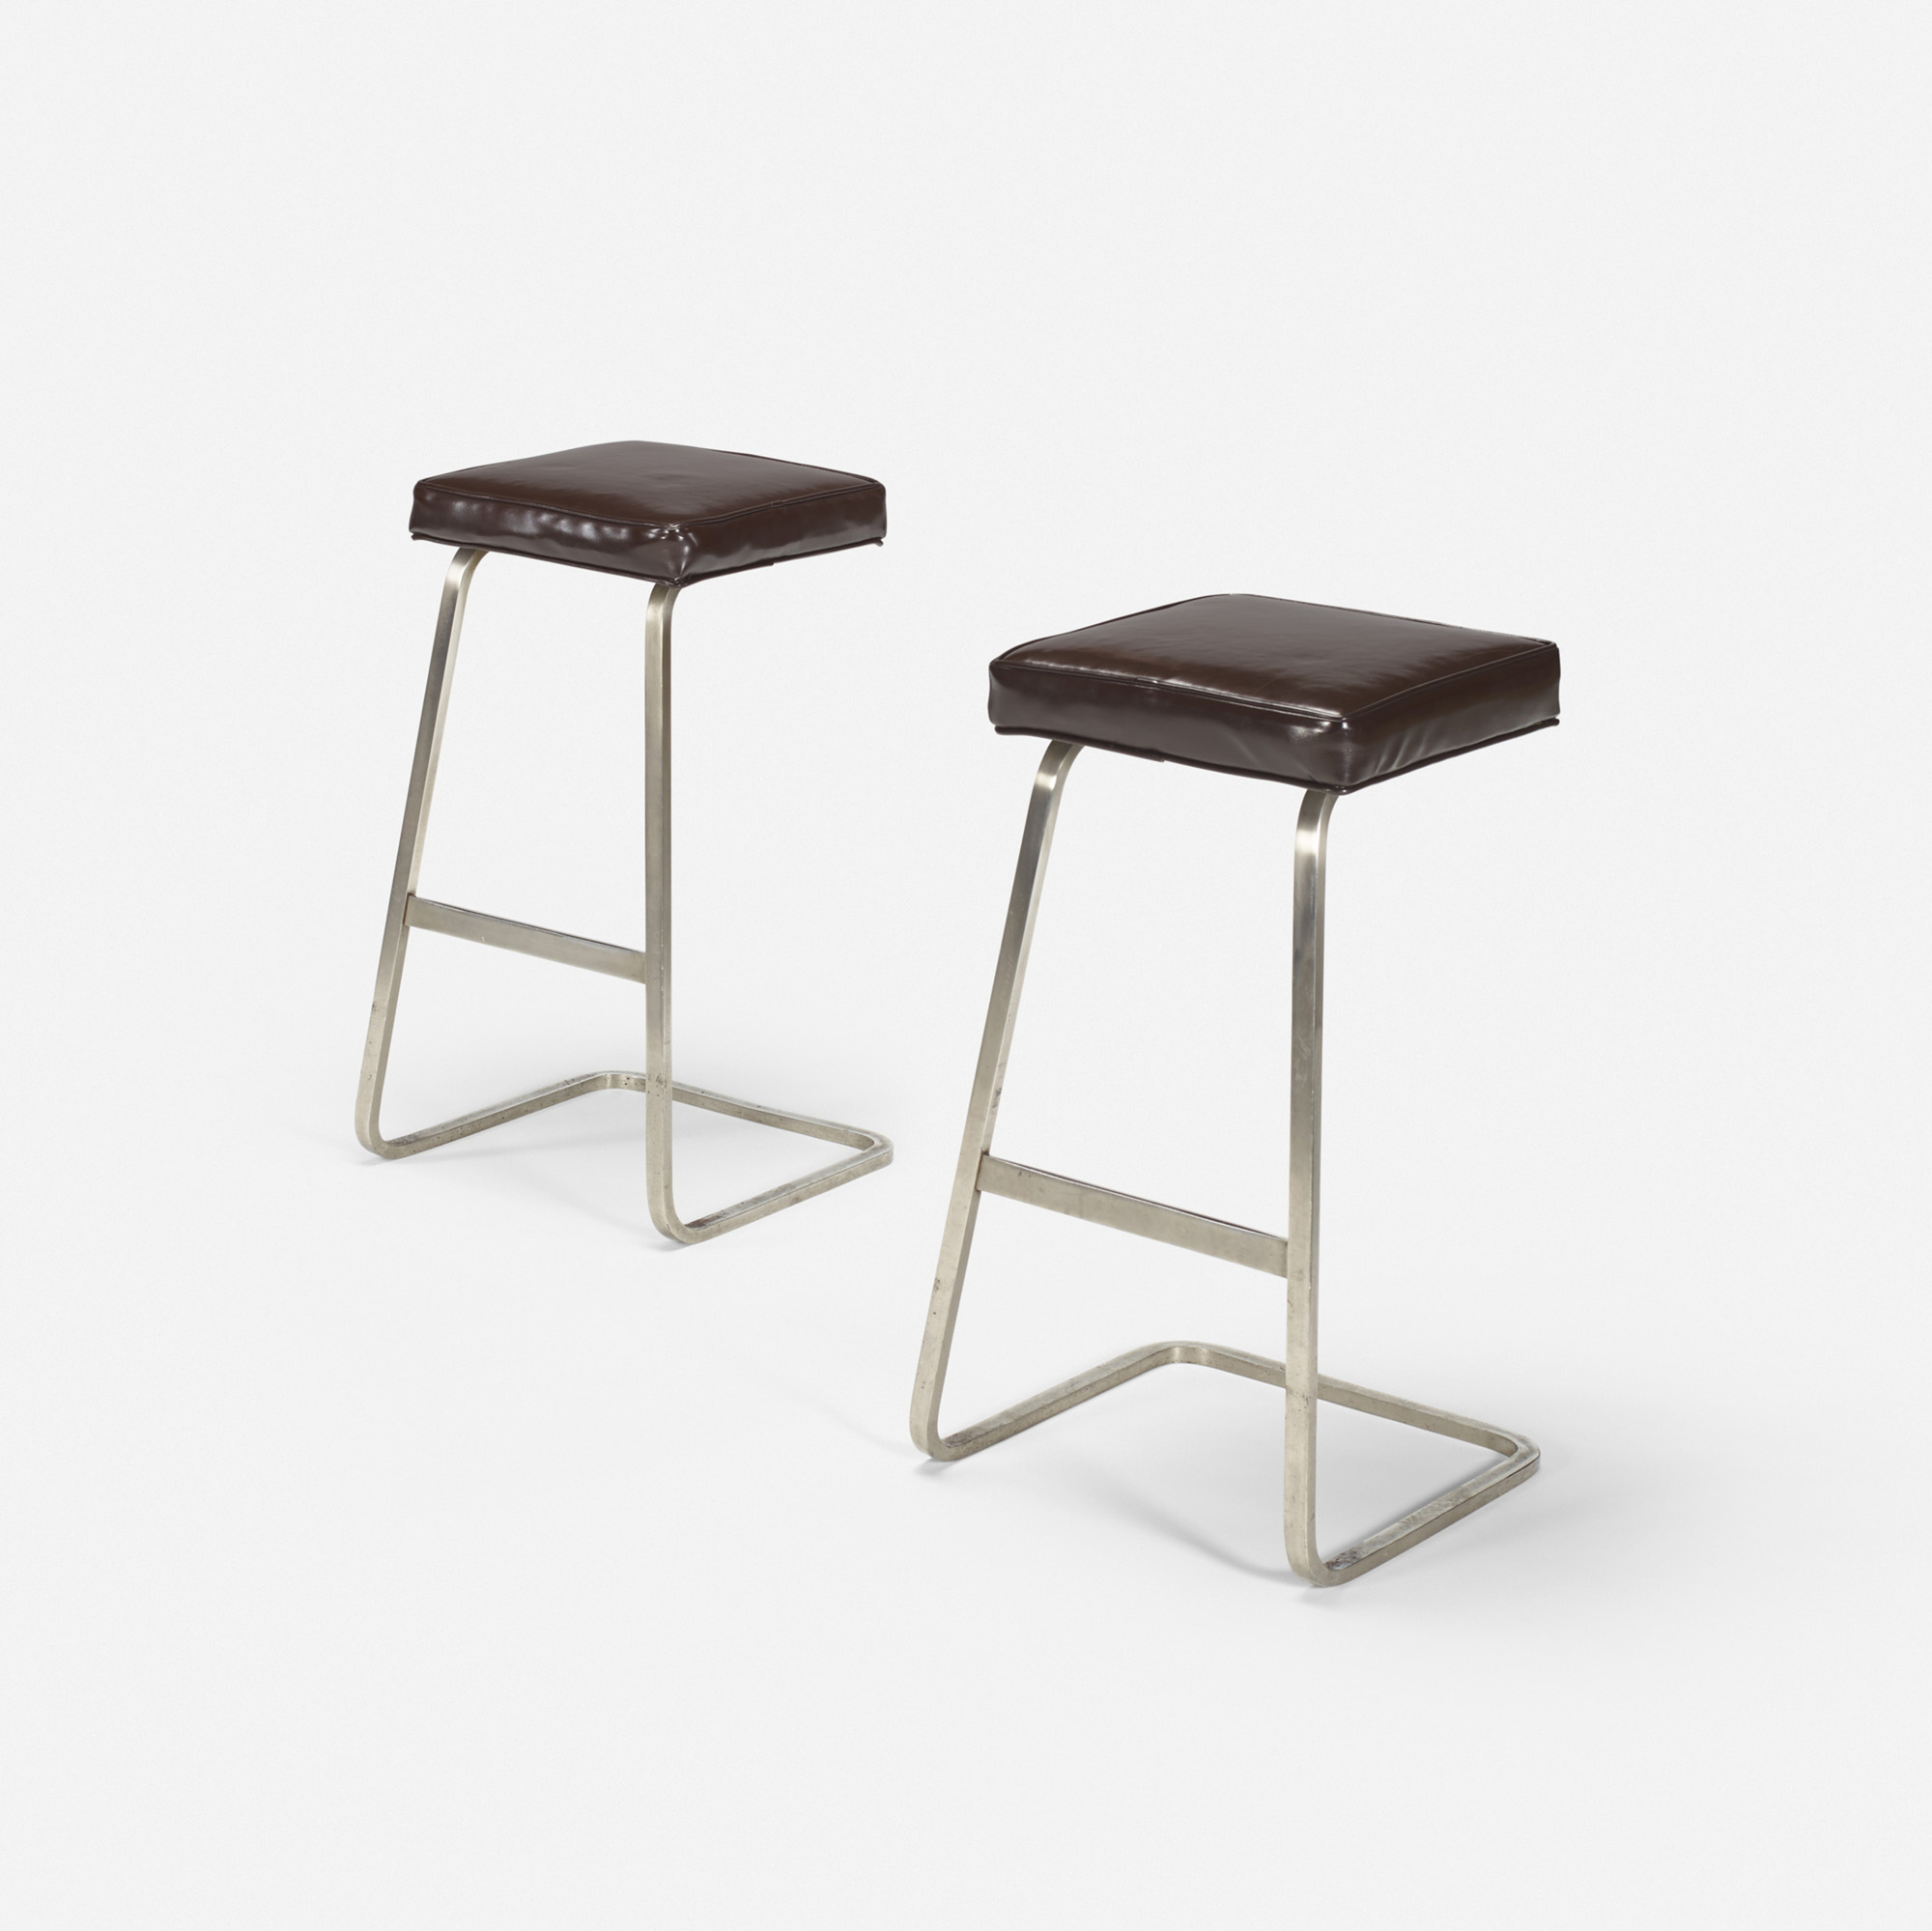 117: Ludwig Mies van der Rohe with Philip Johnson / Four Seasons bar stools from the Grill Room, pair (1 of 1)